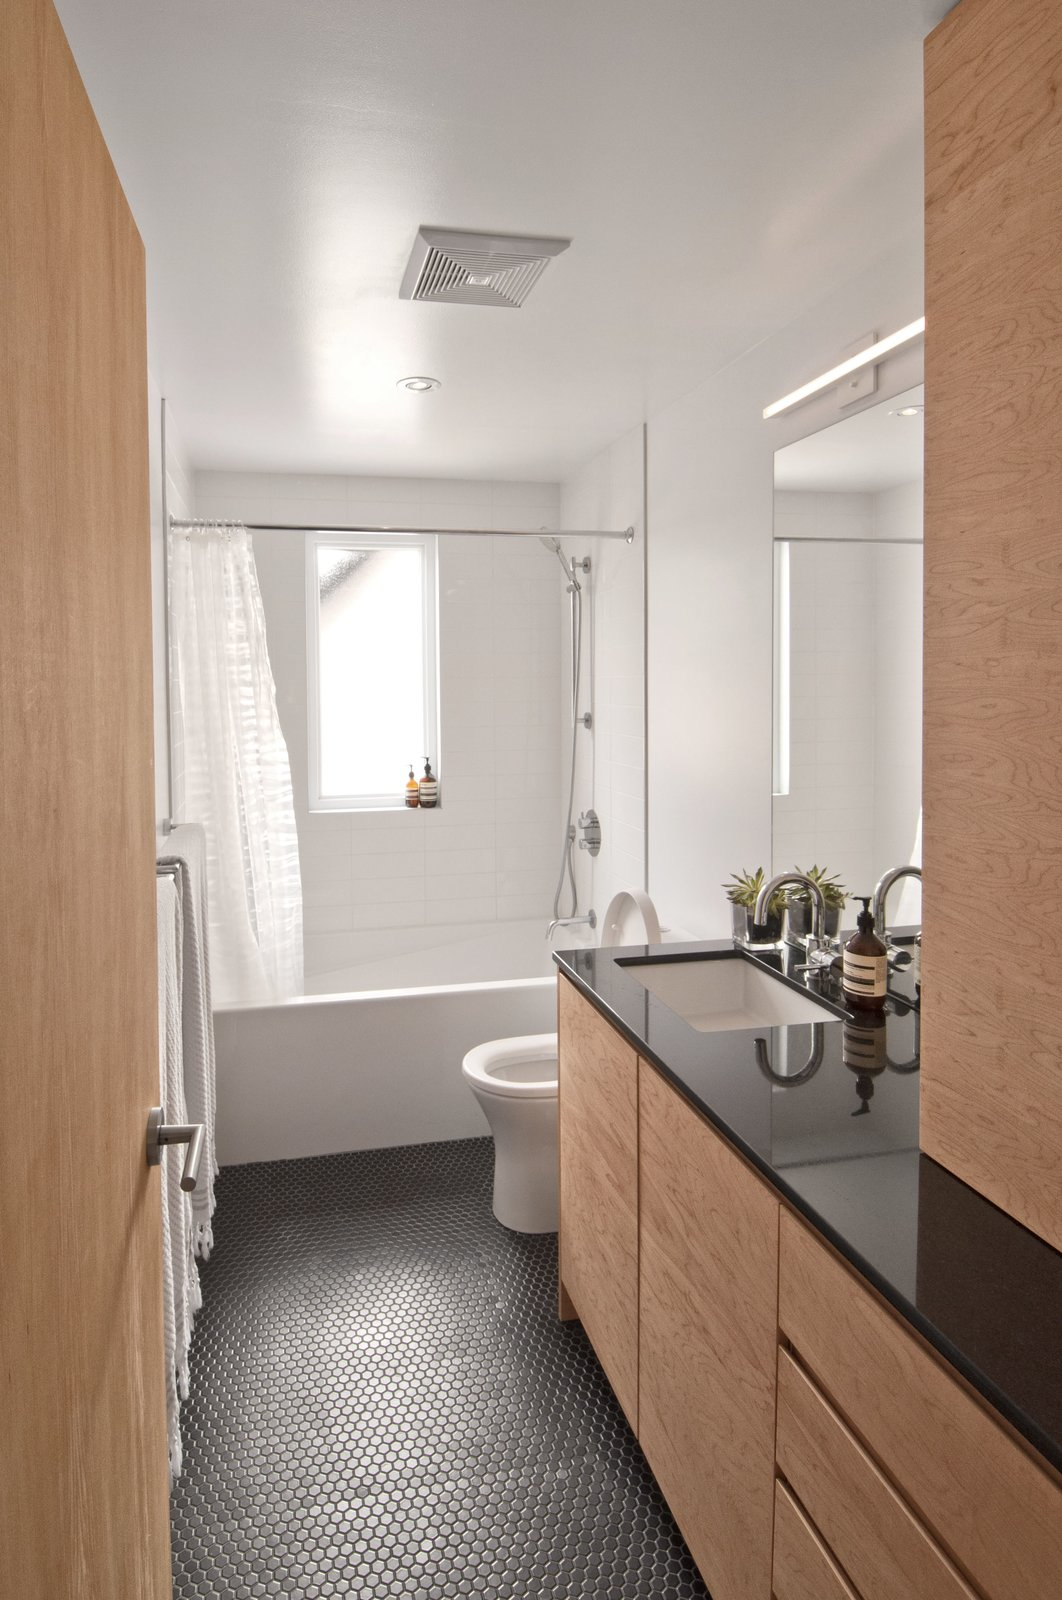 Tagged: Bath Room, Undermount Sink, Porcelain Tile Floor, Granite Counter, Alcove Tub, Open Shower, Recessed Lighting, Ceramic Tile Wall, and Two Piece Toilet.  Fabre Residence by Jonathan Dorthe